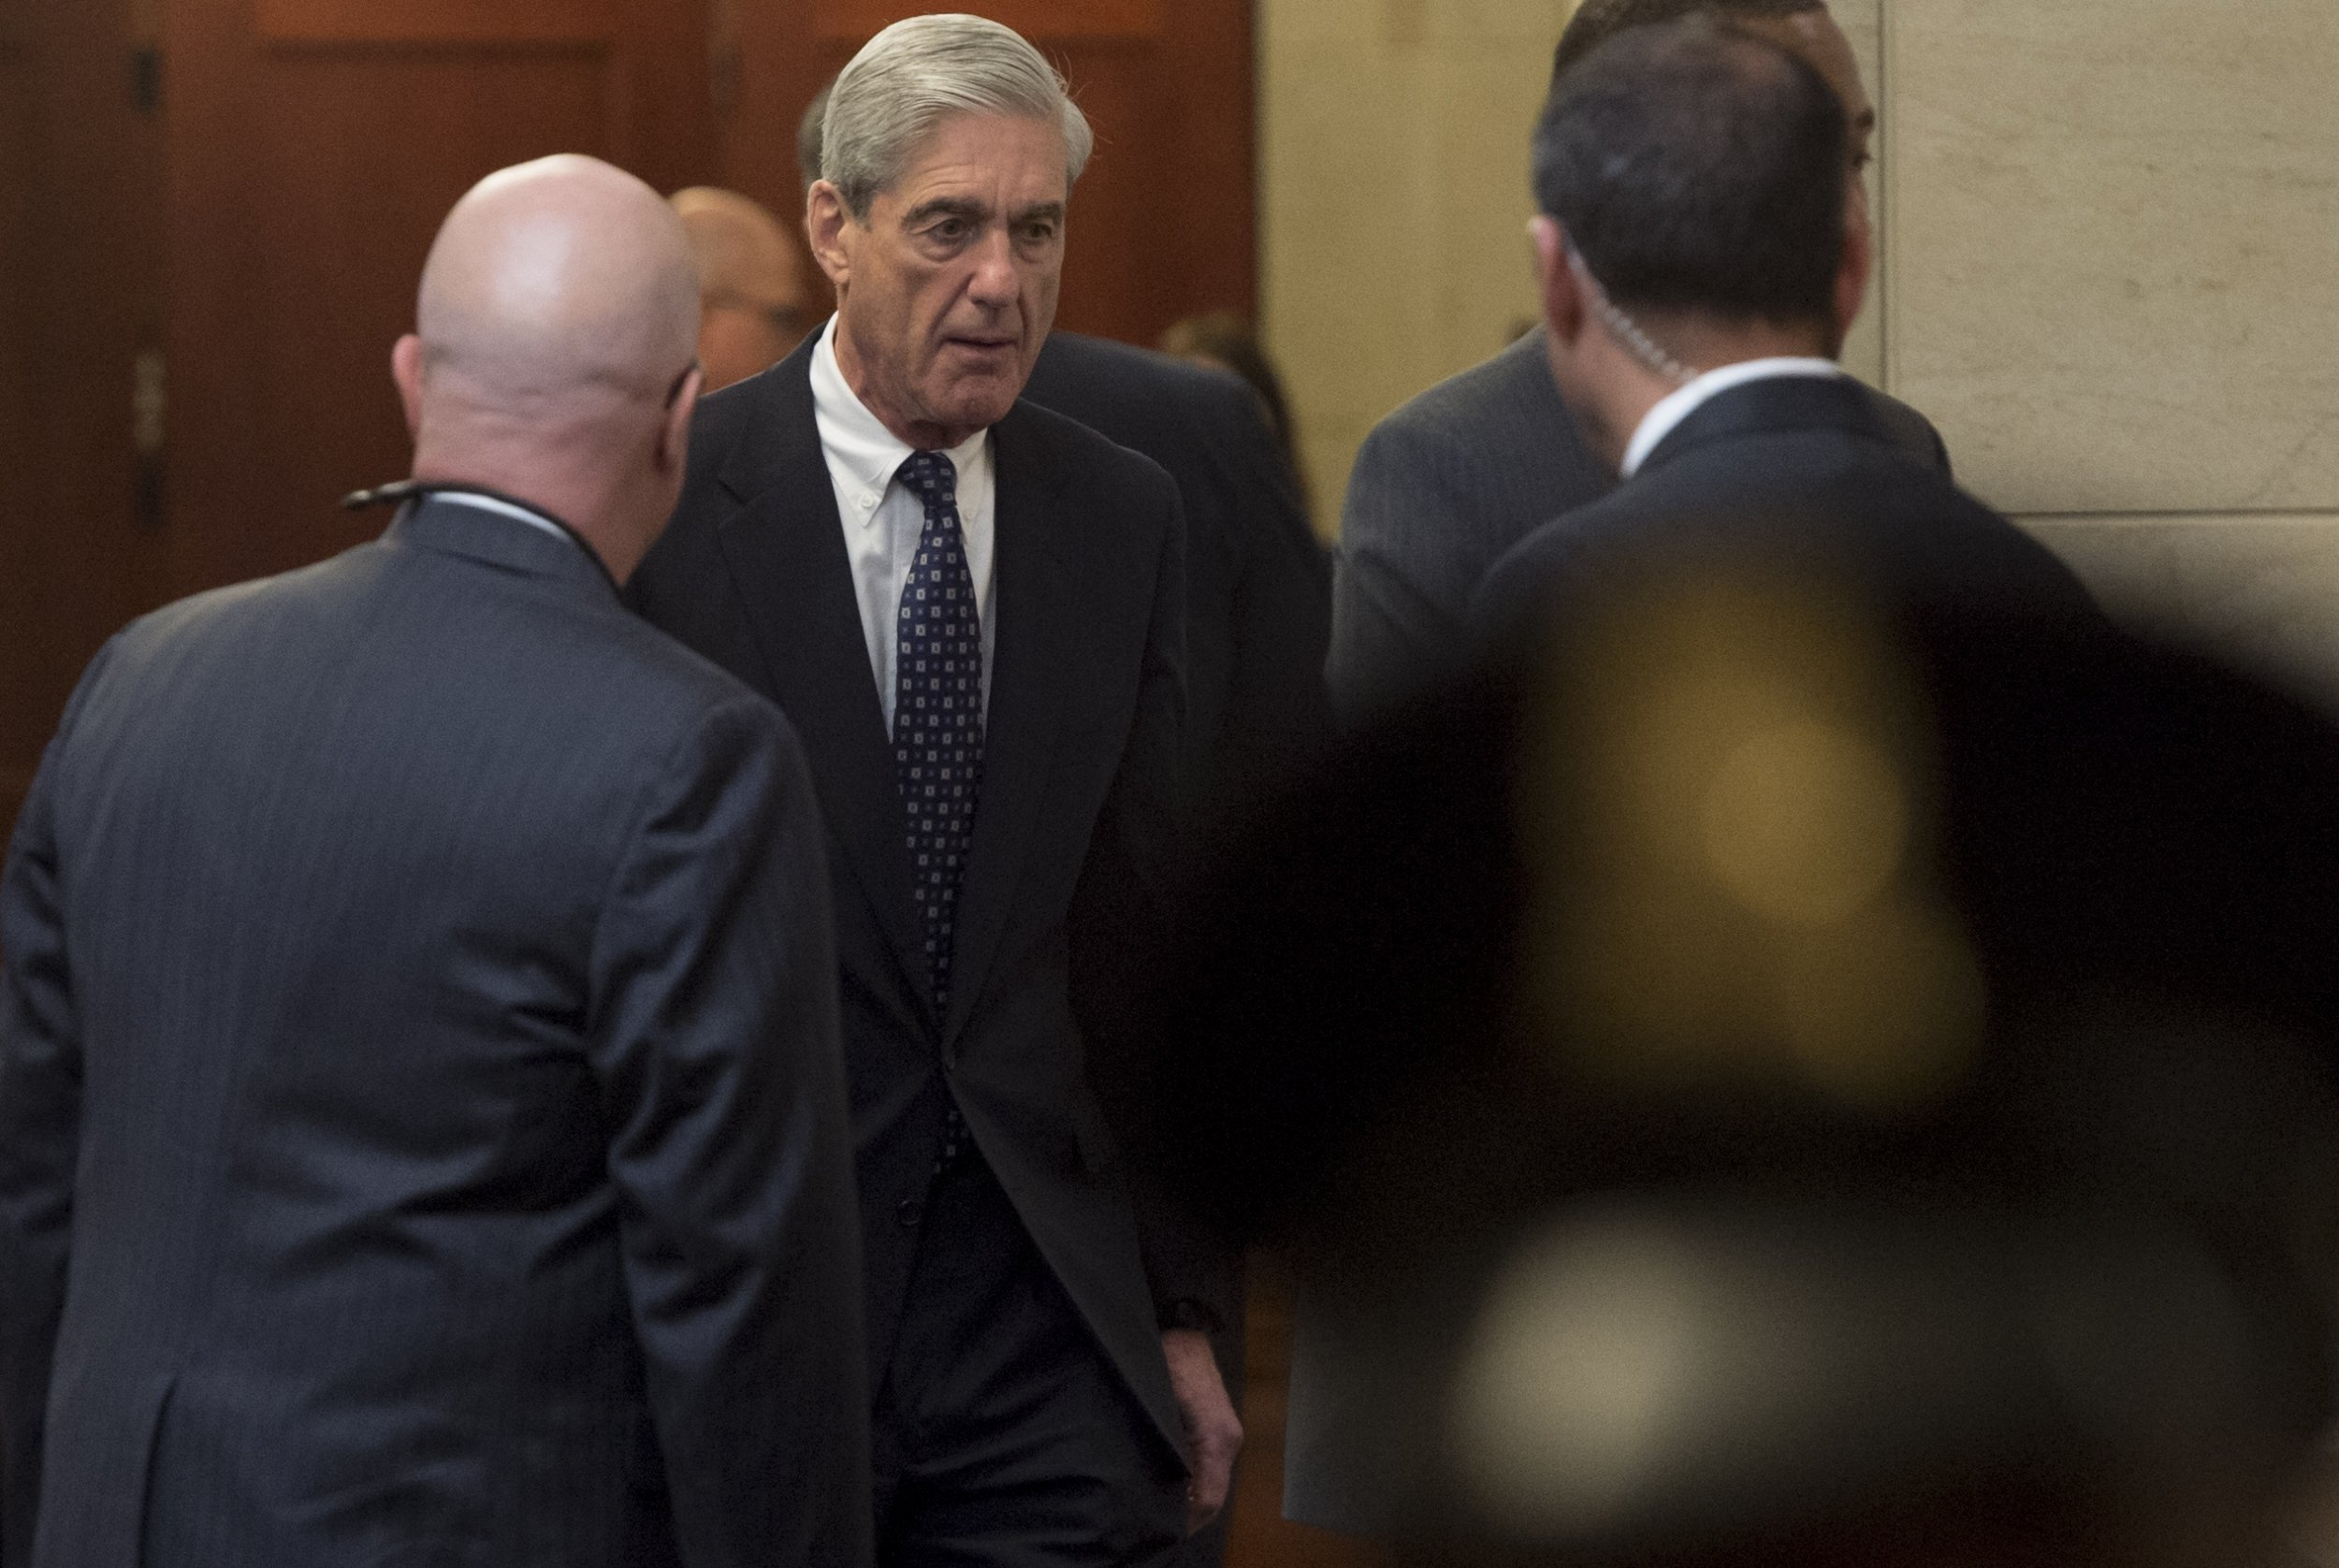 Robert Mueller has lost support from Democrats and independents amid Trump attacks, poll suggests